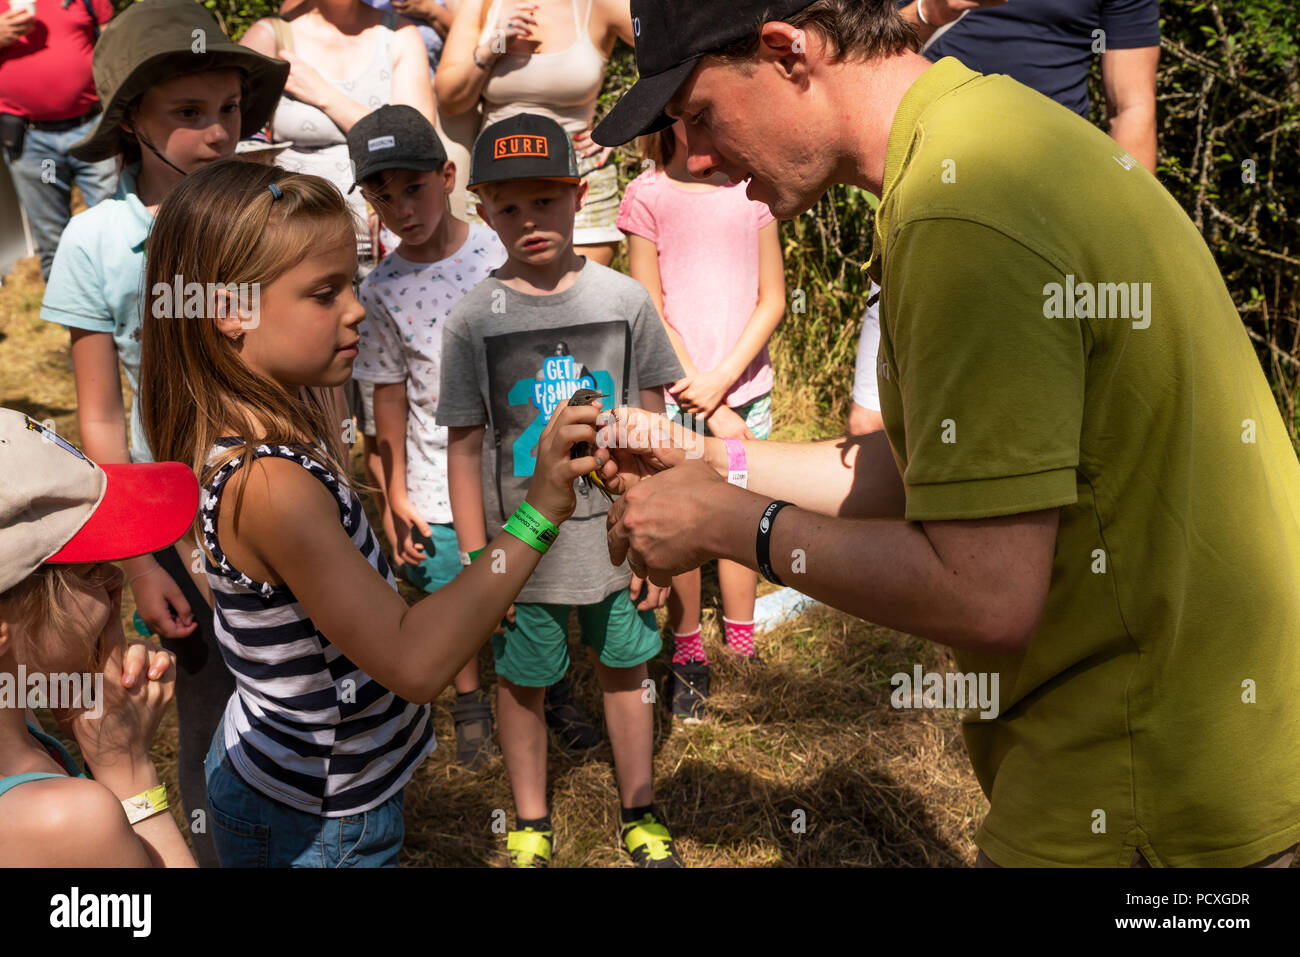 Woodstock, UK, 4th August 2018. Visitors flocked to BBC Countryfile Live, held within the grounds of Blenheim Palace. Animals, wildlife, food, outdoor sports, conservation, farming, rural affairs, entertainment, all were represented. A demonstration at the BTO stall on ringing, weighing and measuring a grey wagtail (motacilla cinereabto) before it was released by a young girl. Credit: Stephen Bell/Alamy Live News. - Stock Image